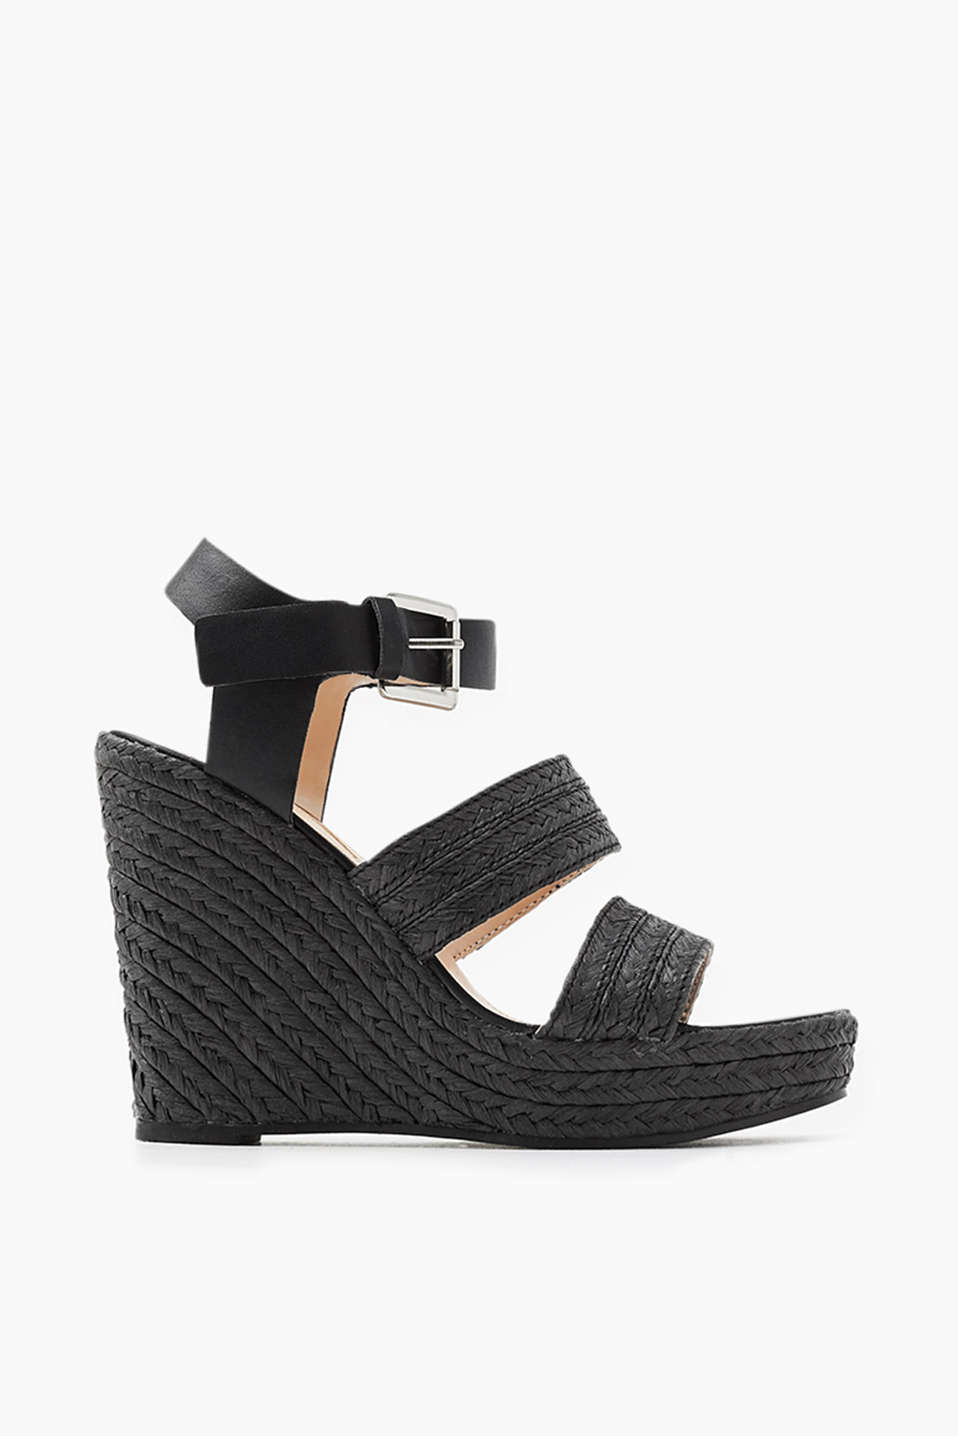 Sandal with wedge heel with wide straps